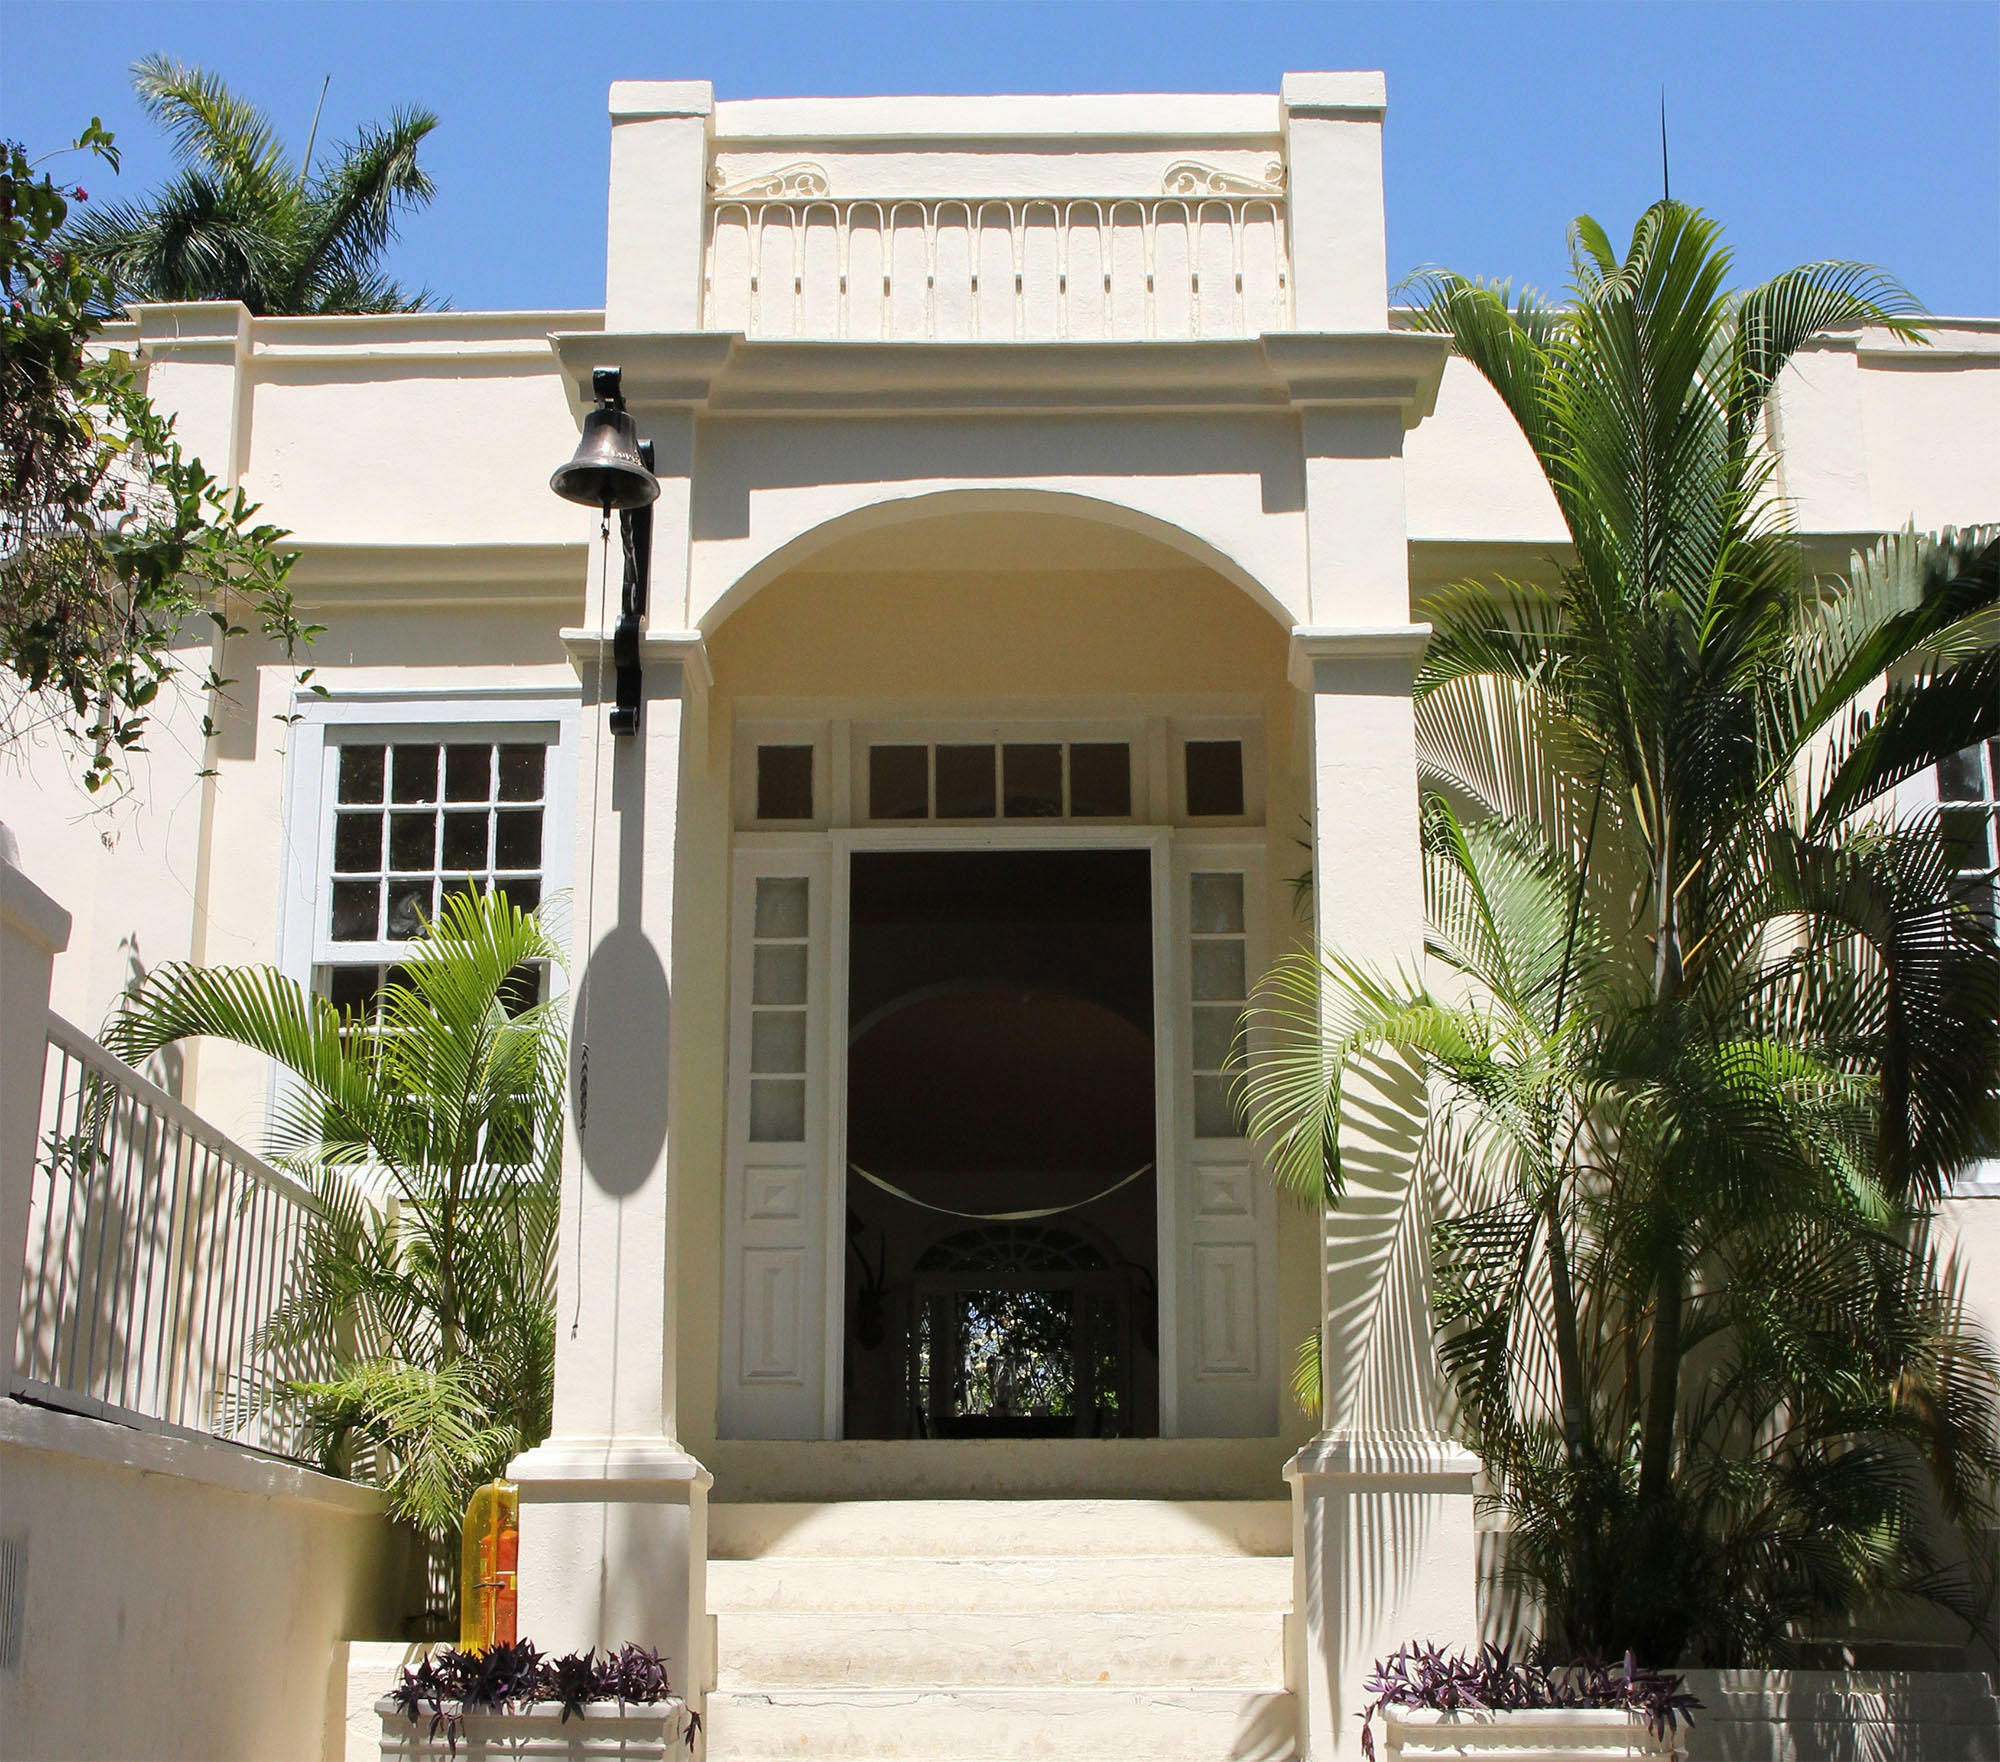 Finca Vigía Was The Home Of Ernest Hemingway House Is Now A Museum